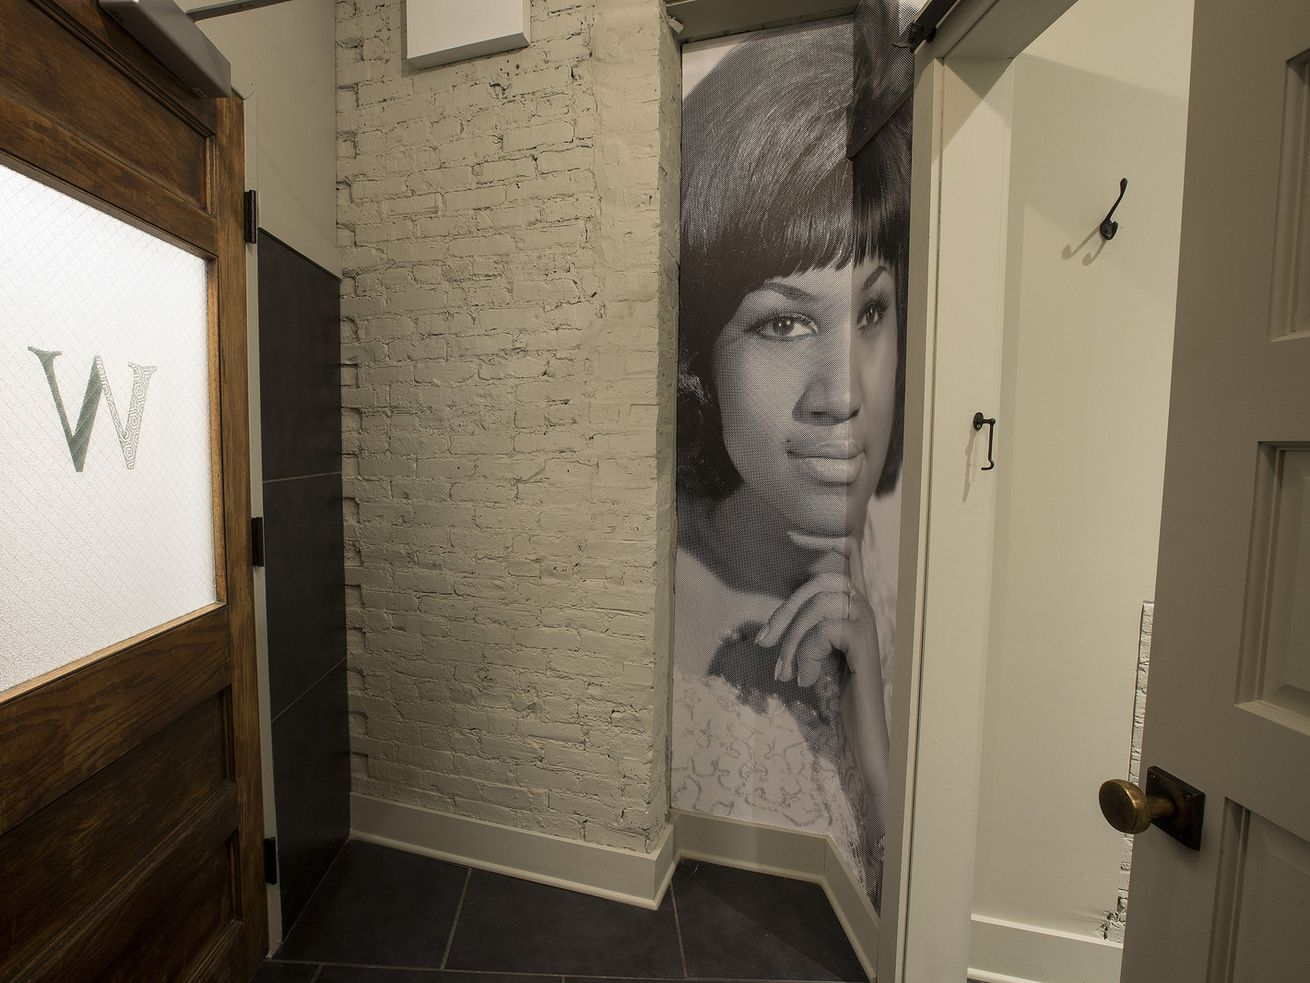 The women's bathroom at Virtue features a tribute to the late Aretha Franklin.